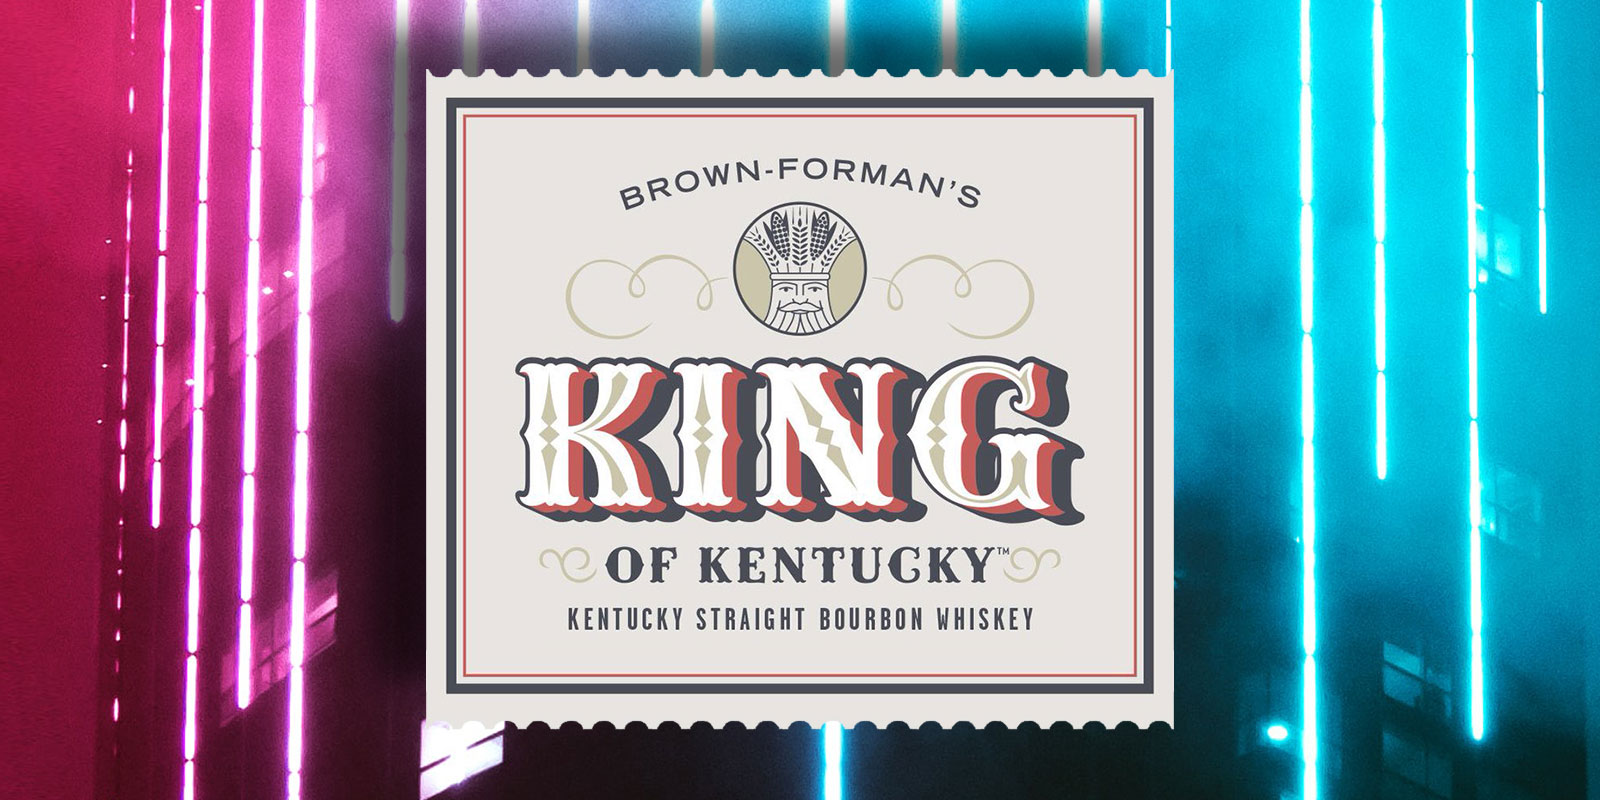 King of Kentucky 2021 fourth edition